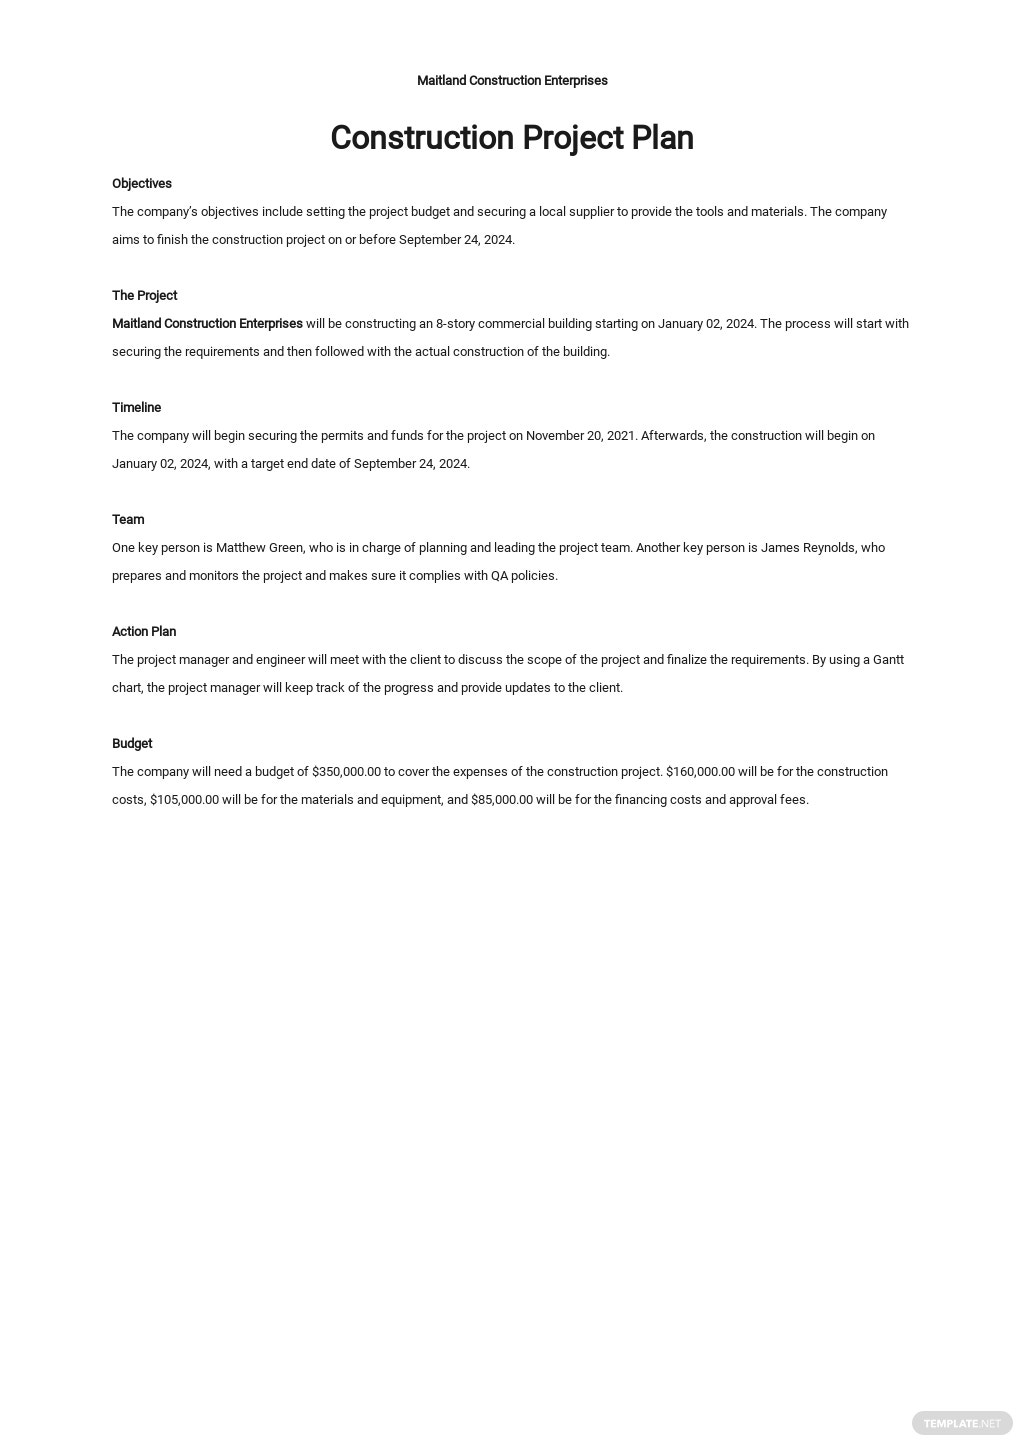 One Page Construction Project Plan Template.jpe